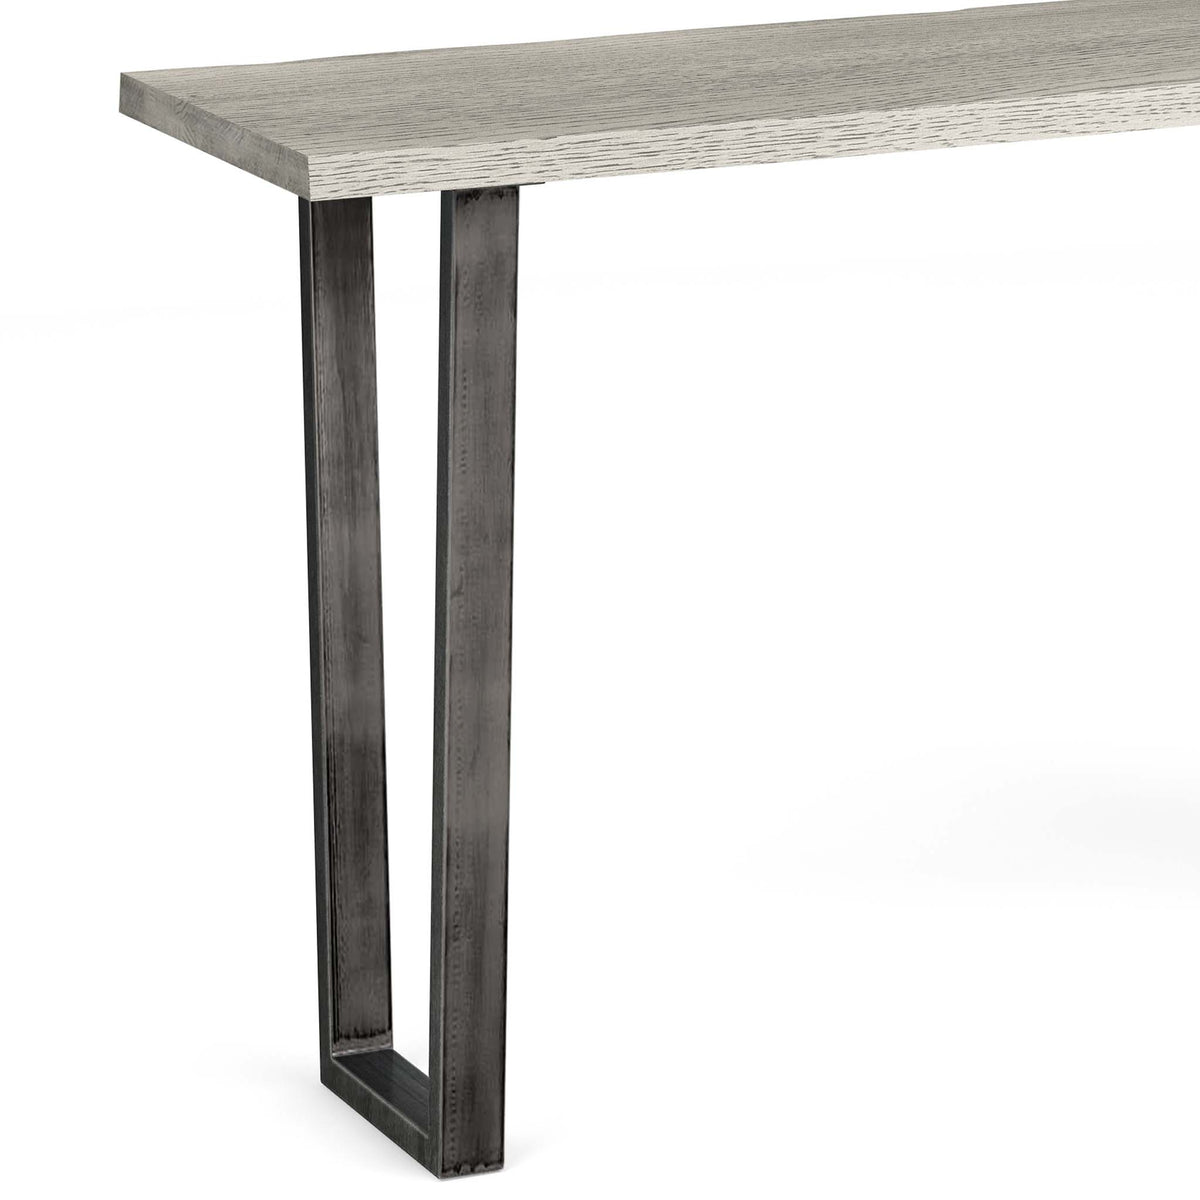 Soho Console or Hall Table - Close up of legs